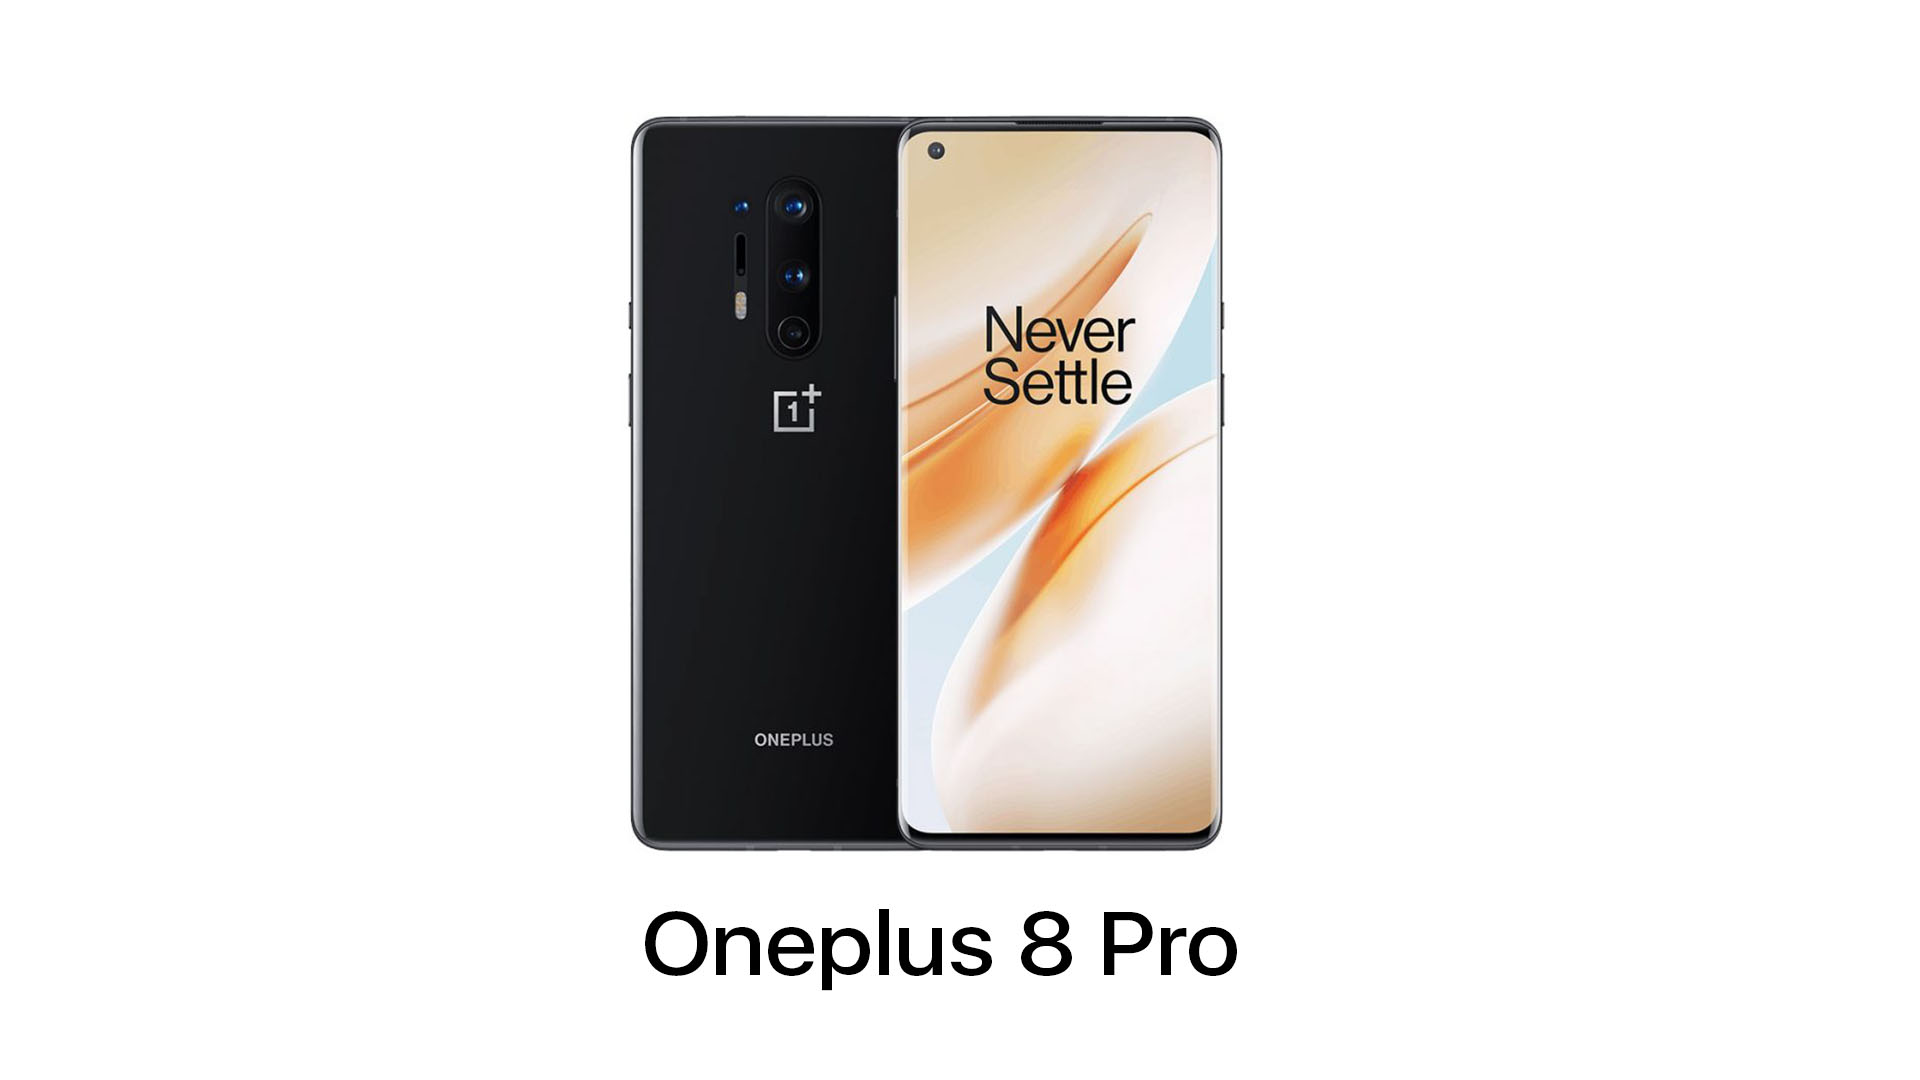 Oneplus 8 Pro specification and overview